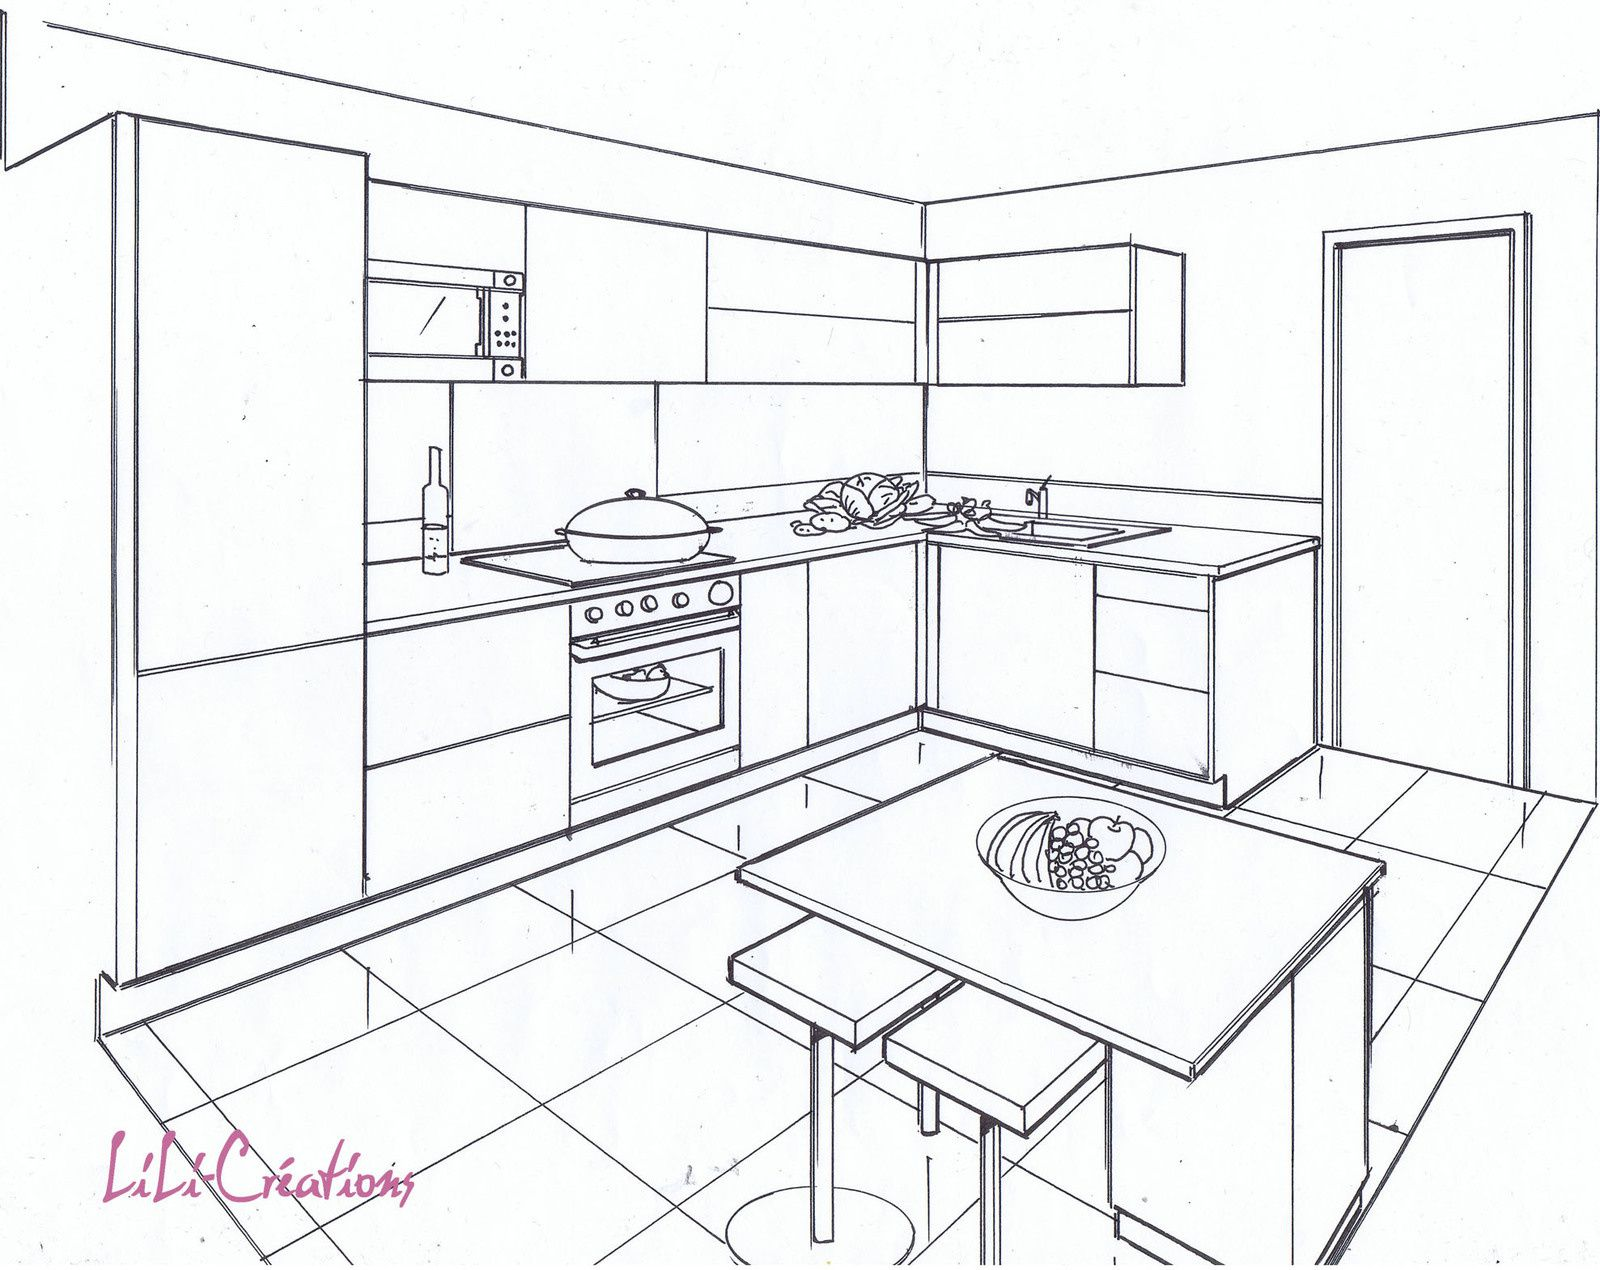 dessiner ma cuisine en 3d gratuit dessiner sa cuisine en. Black Bedroom Furniture Sets. Home Design Ideas